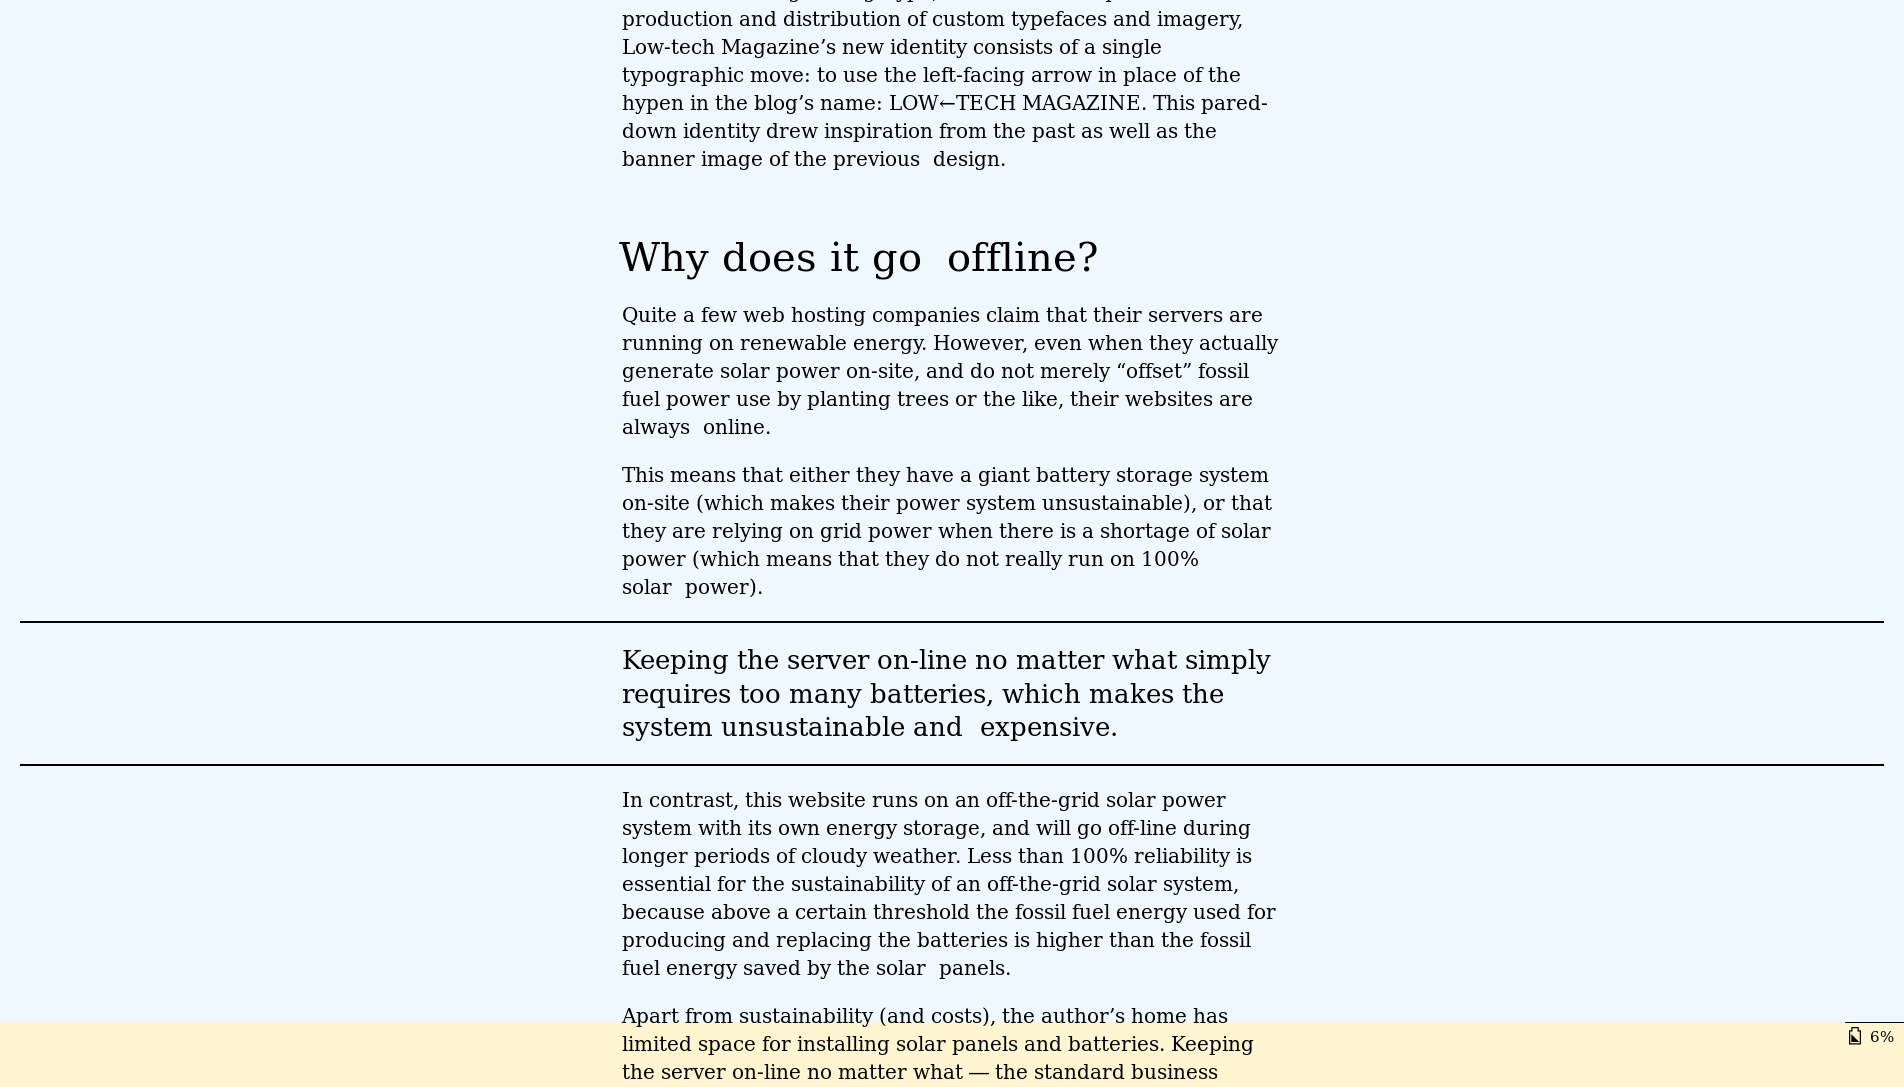 content/images/solar-low-tech-mag/whyoffline_screenshot.png